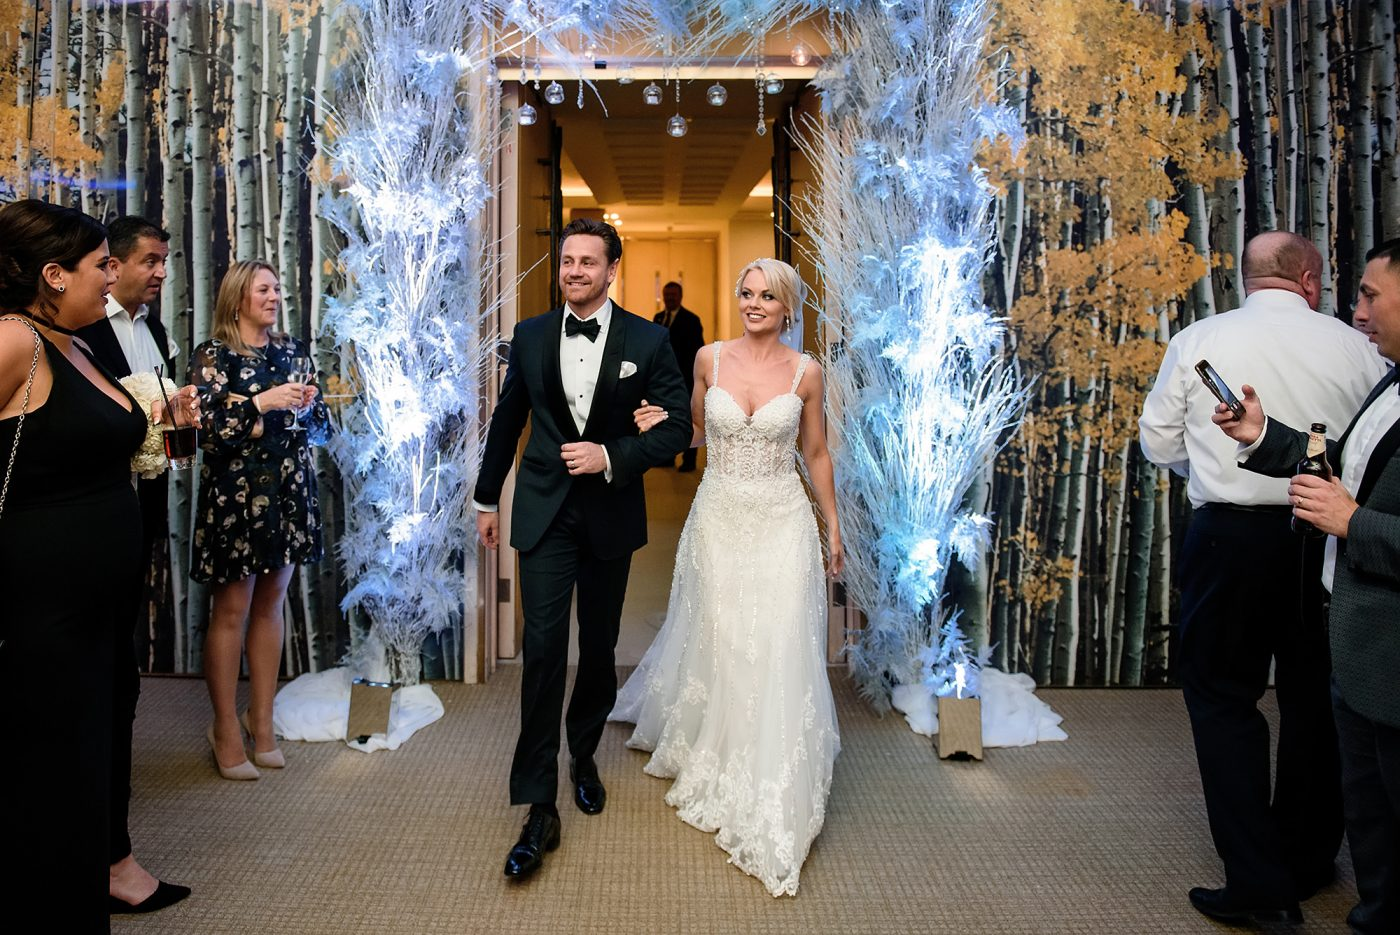 winter wonderland wedding entrance